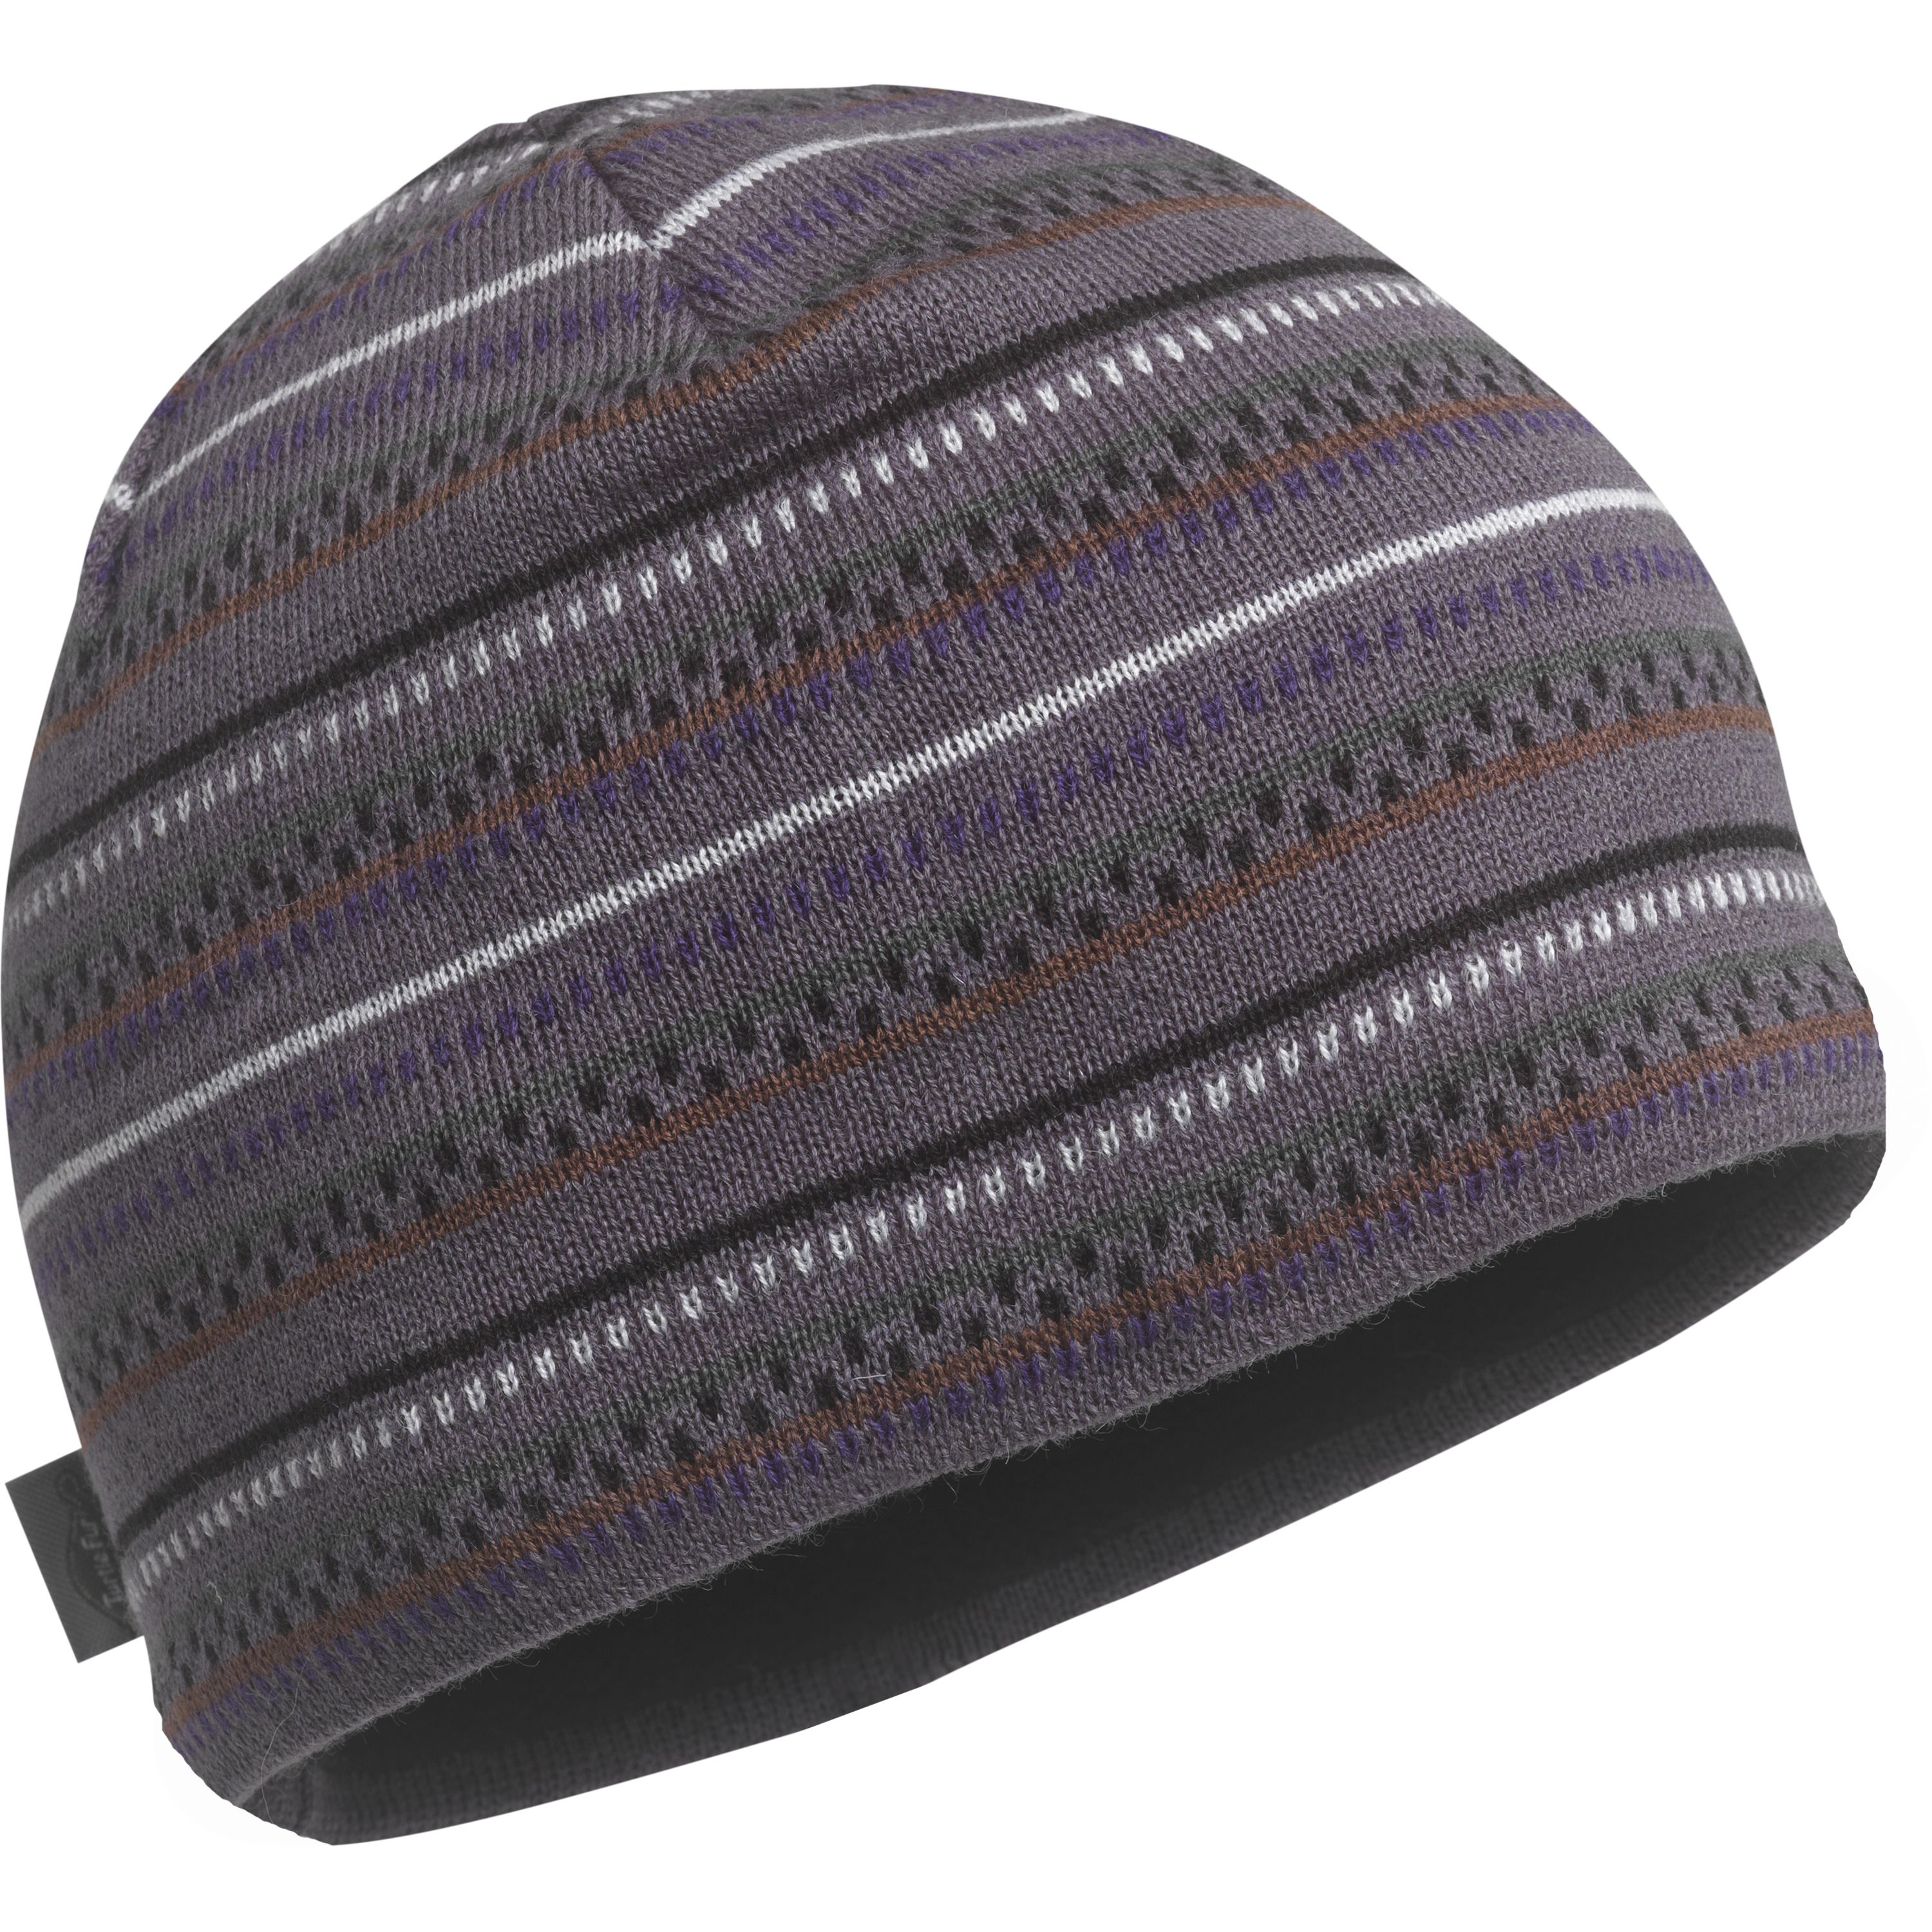 Turtle Fur Men's Niall, Midweight Merino Wool Knit Beanie